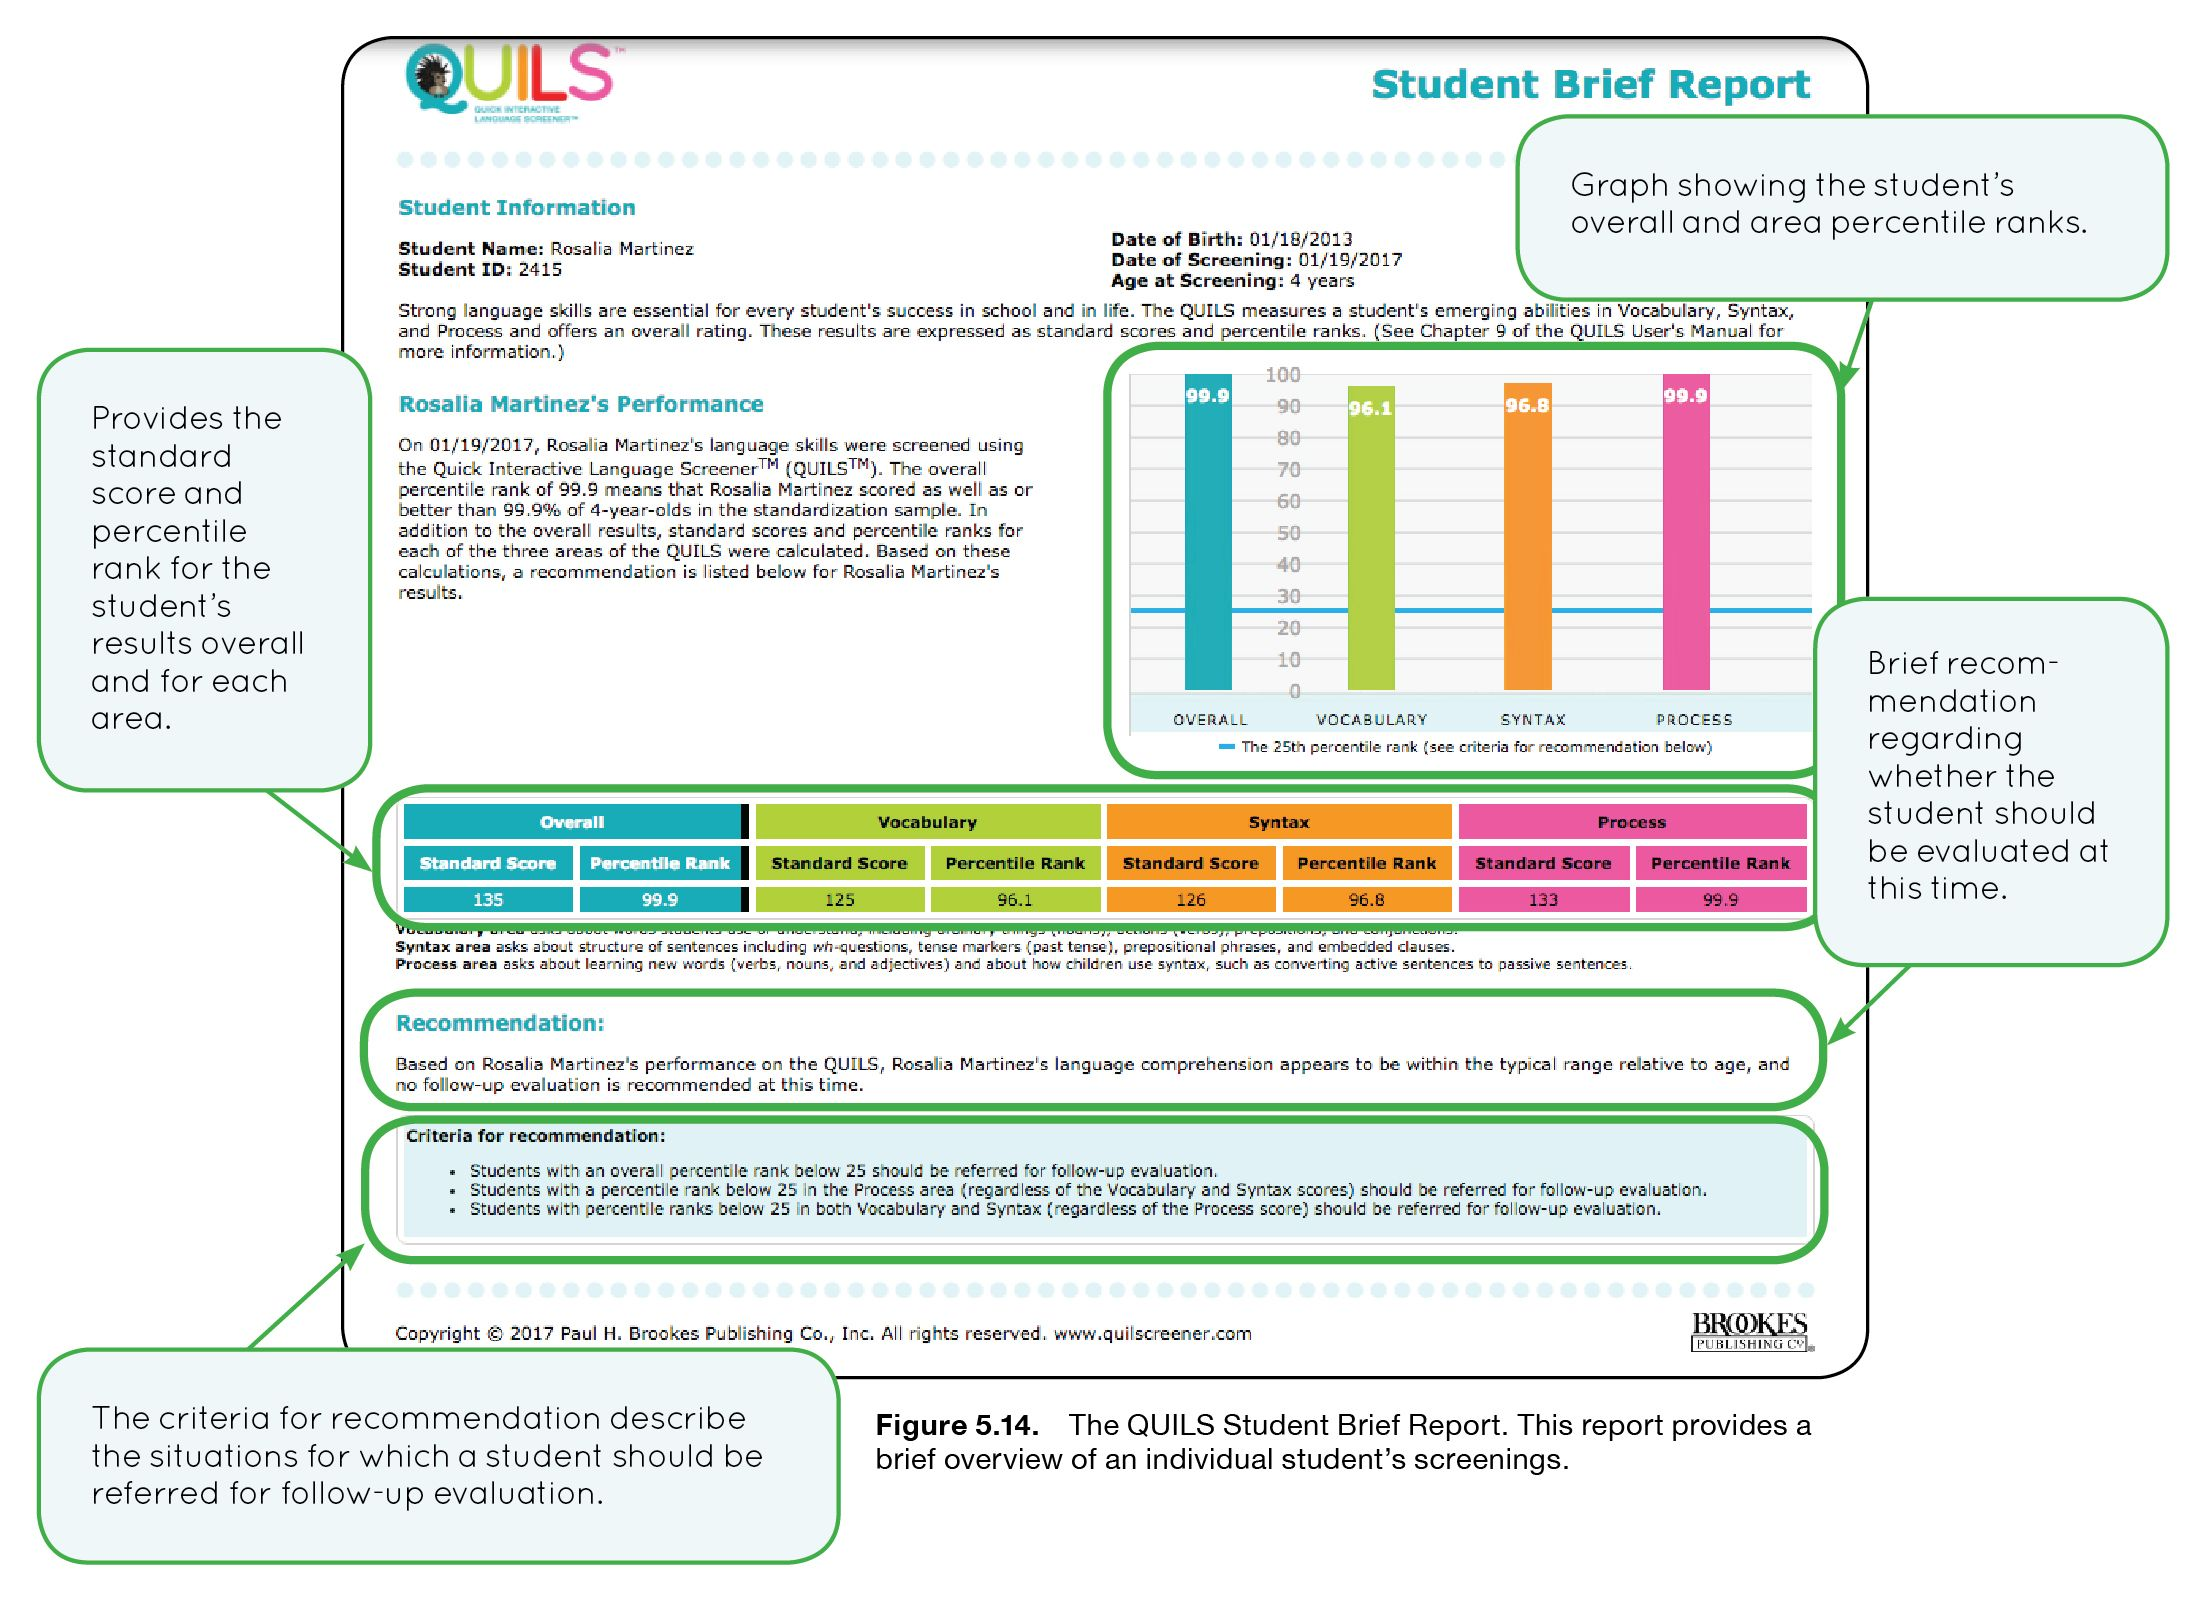 [EXCERPT] Read the QUILS reports excerpt from the User's Manual to see  detailed information